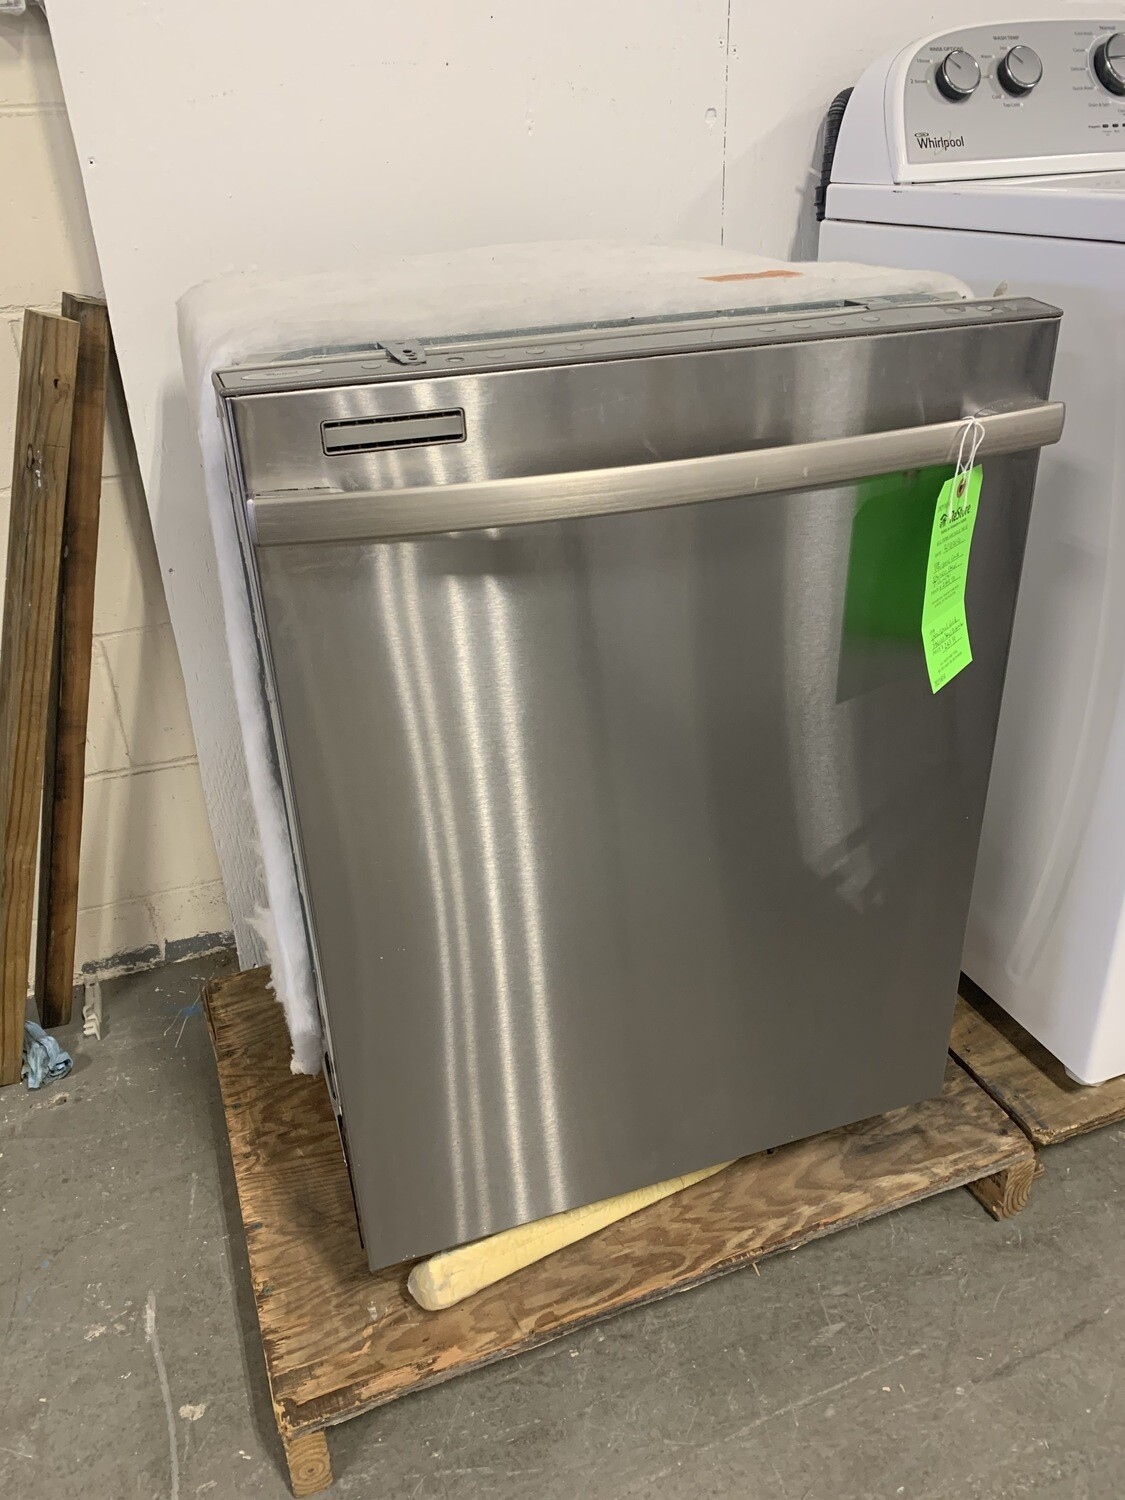 Whirlpool Gold Stainless Steel Dishwasher